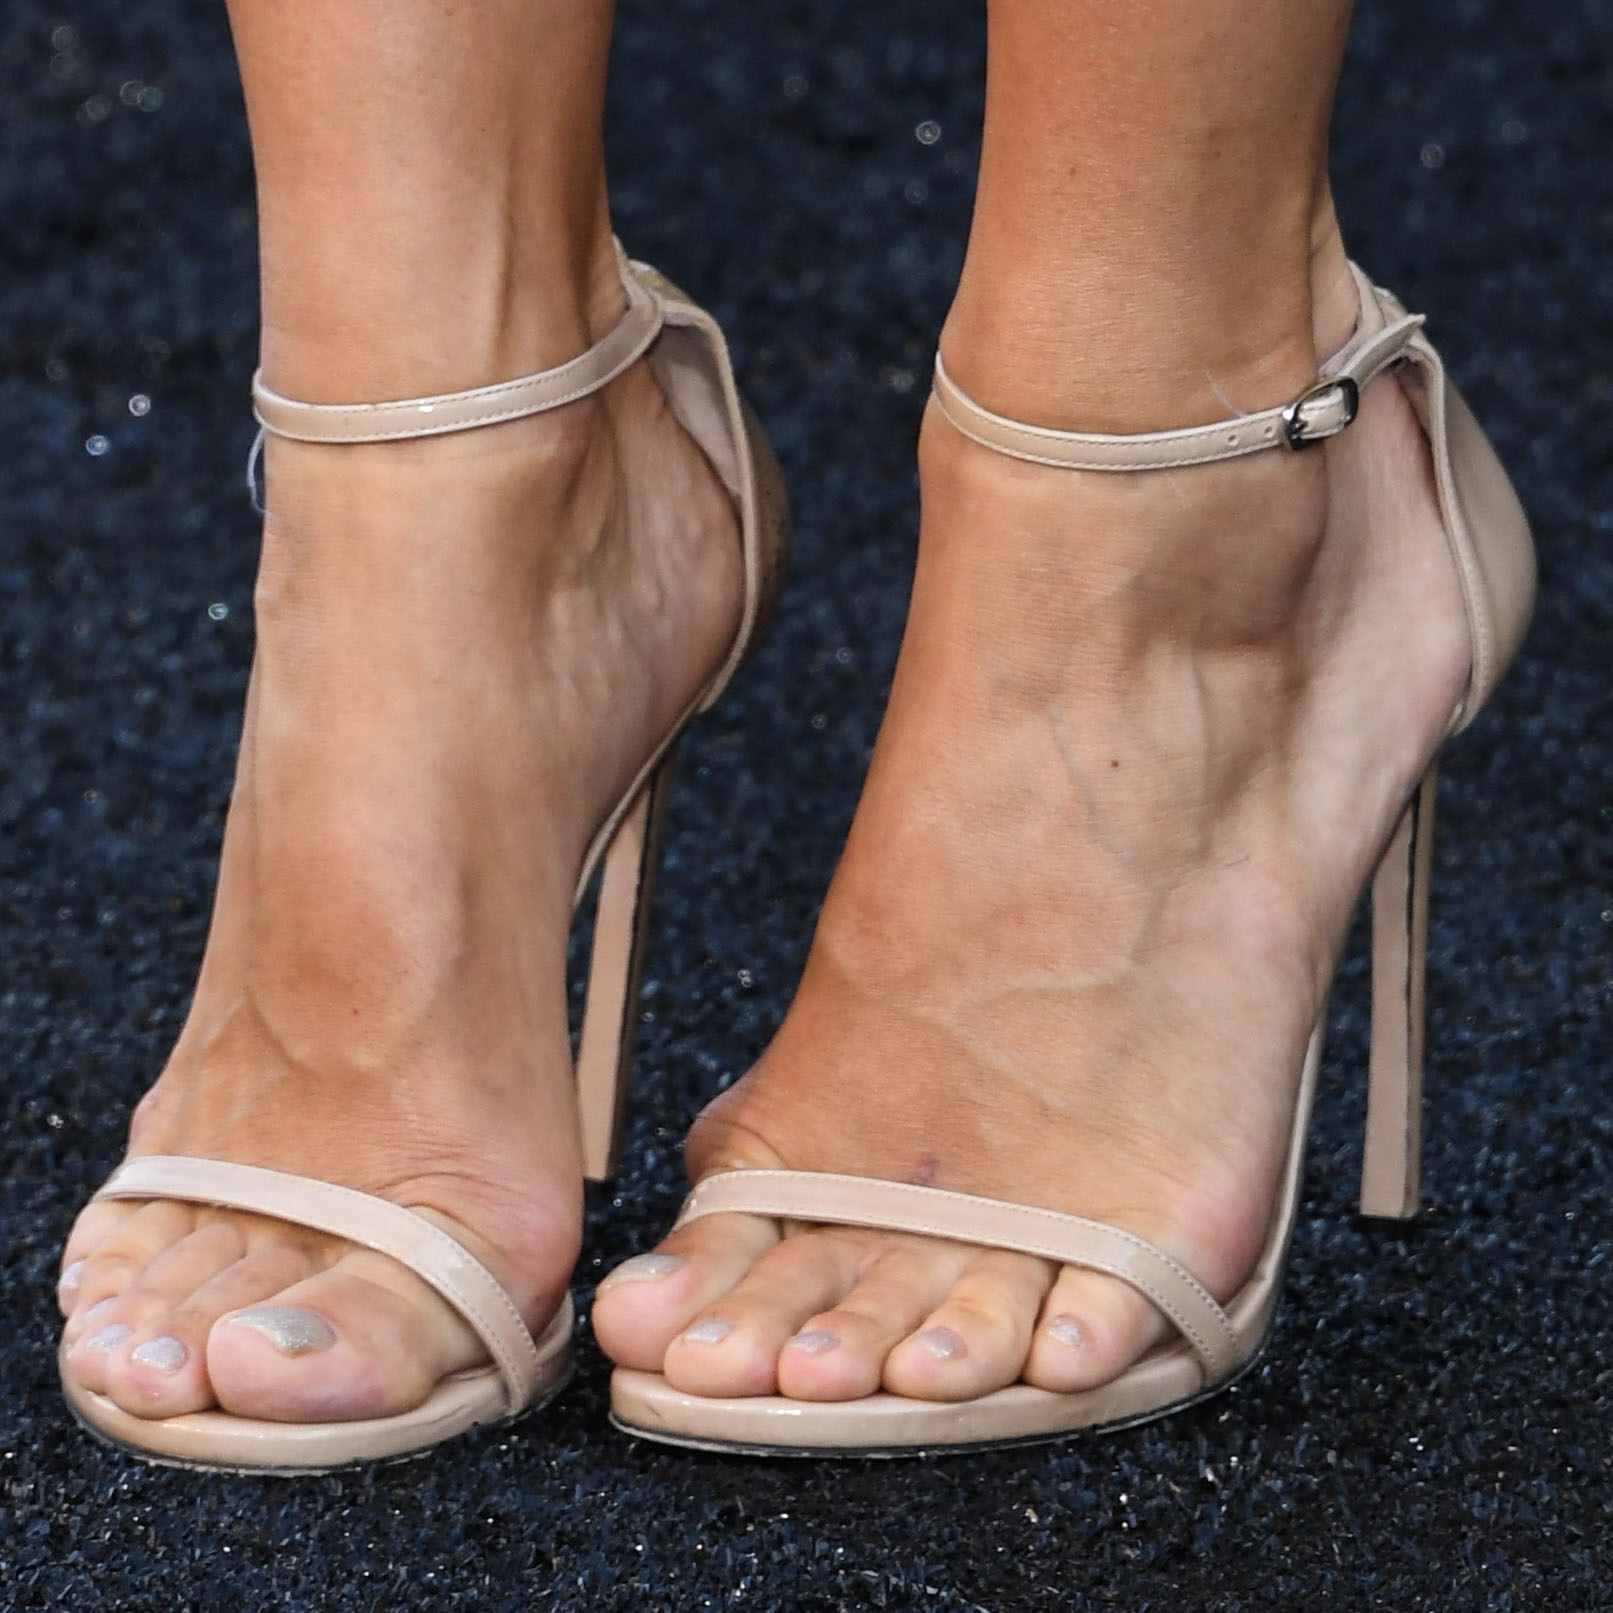 Feet Molly Sims naked (27 photos), Topless, Is a cute, Feet, braless 2020